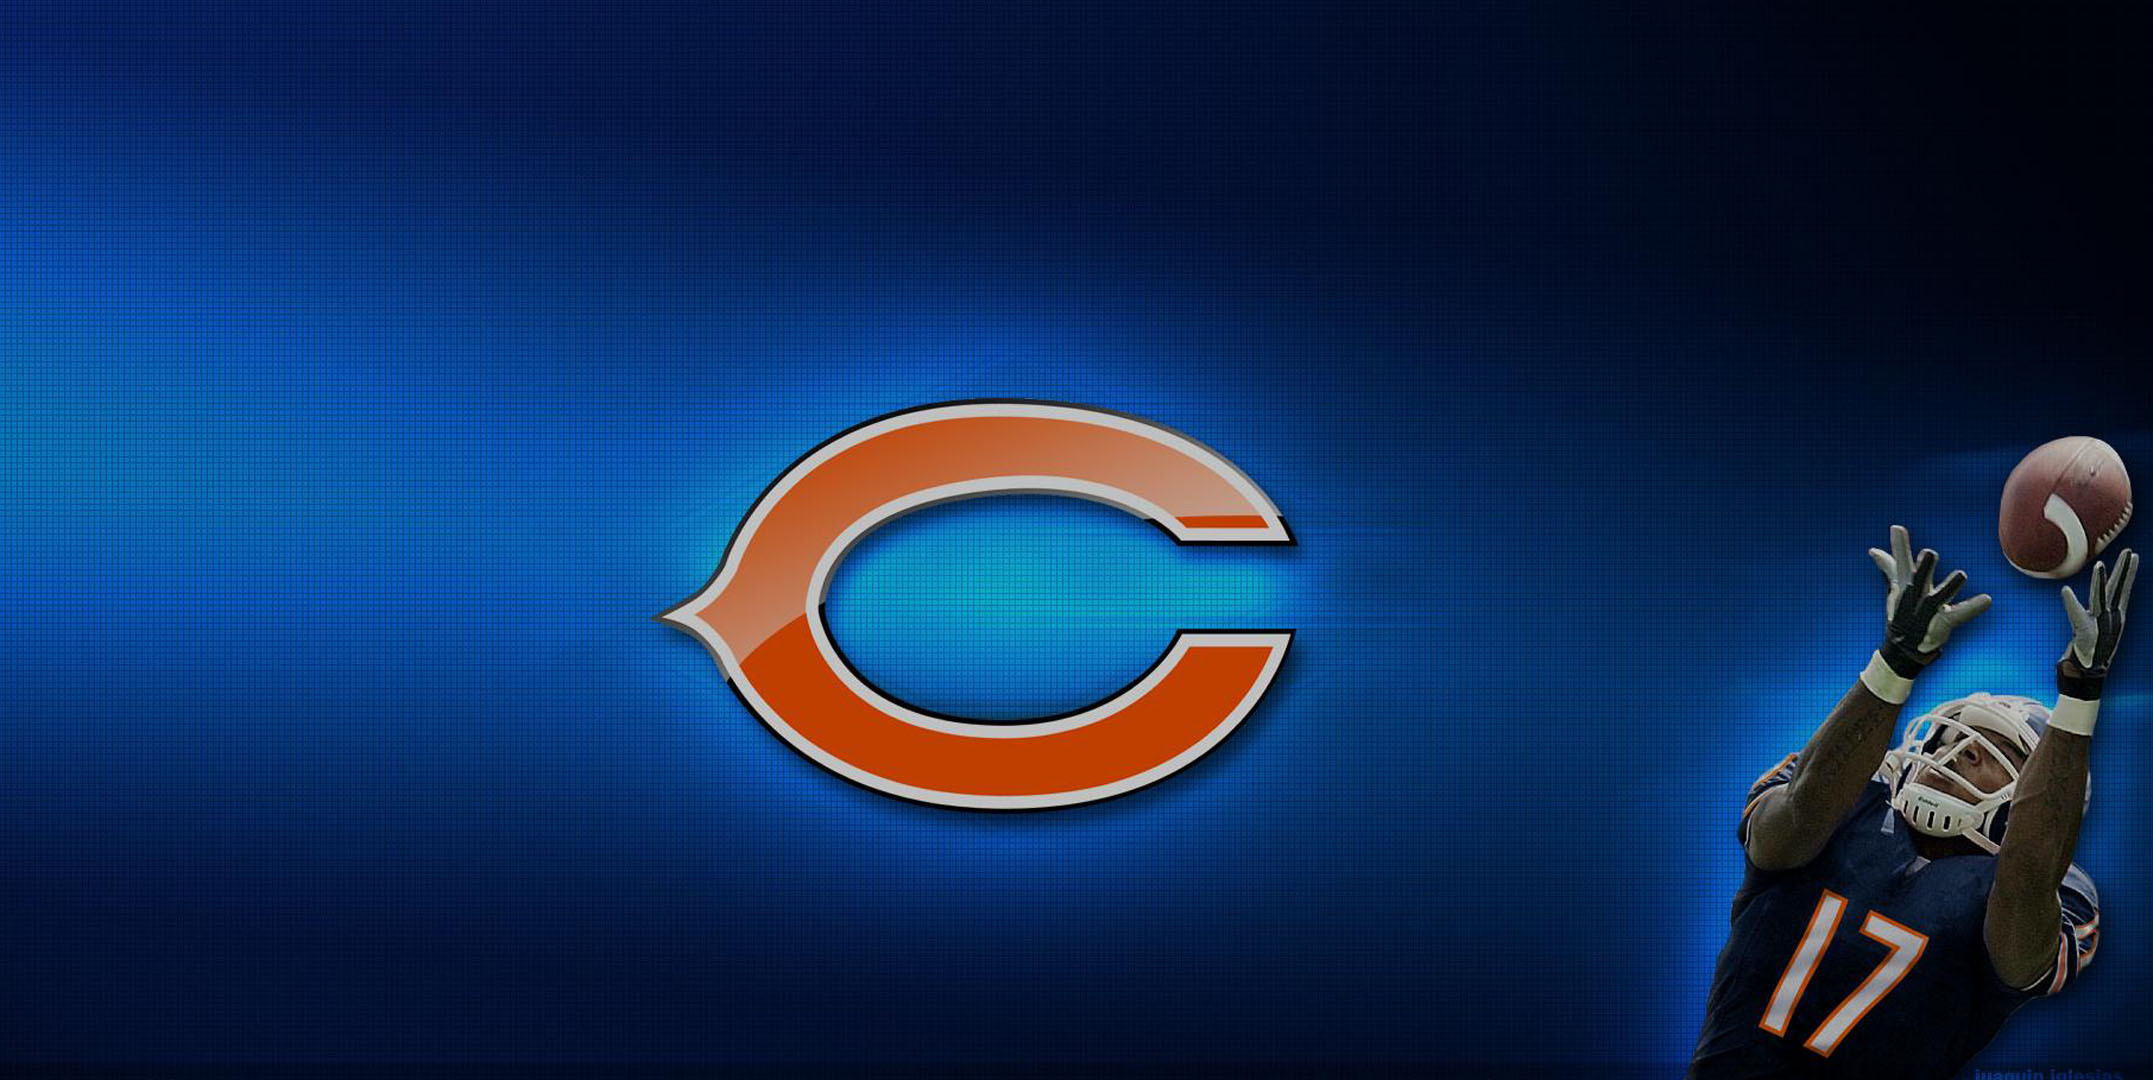 2153x1080 Chicago Bears Wallpaper Best Of Chicago Bears Wallpapers S Backgrounds